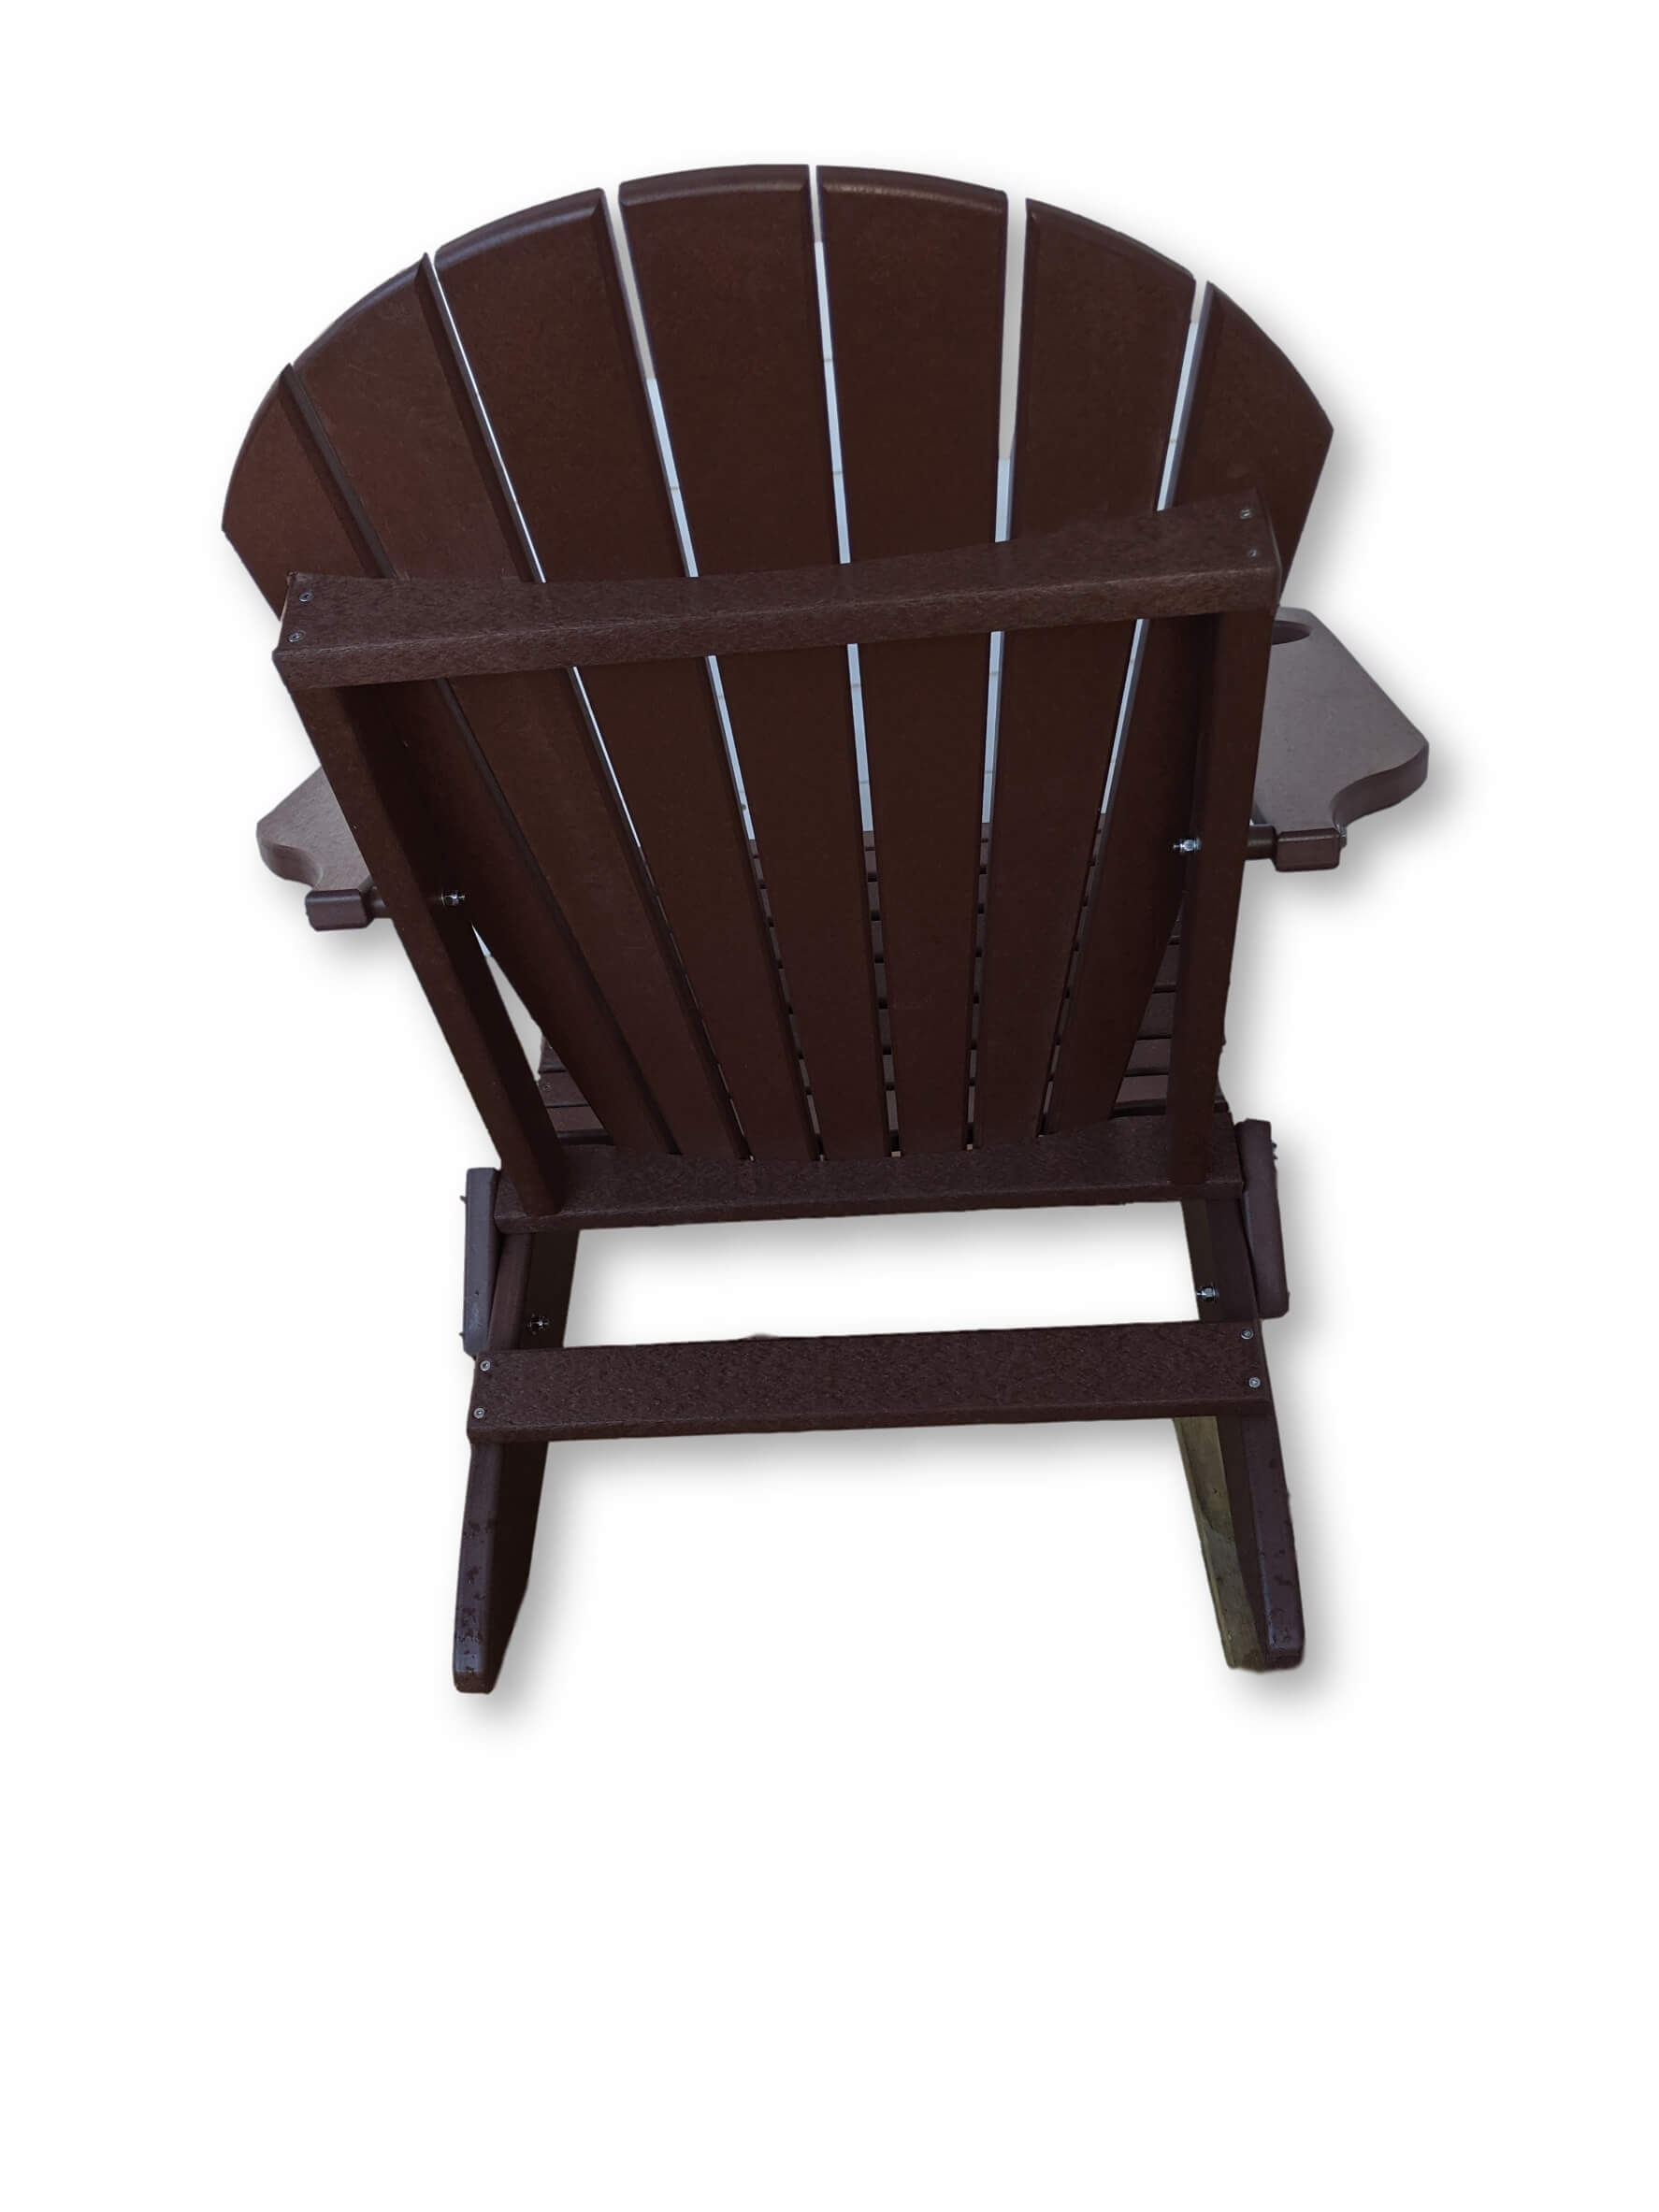 Tudor Brown Folding Adirondack Chair(No Cup Holders)